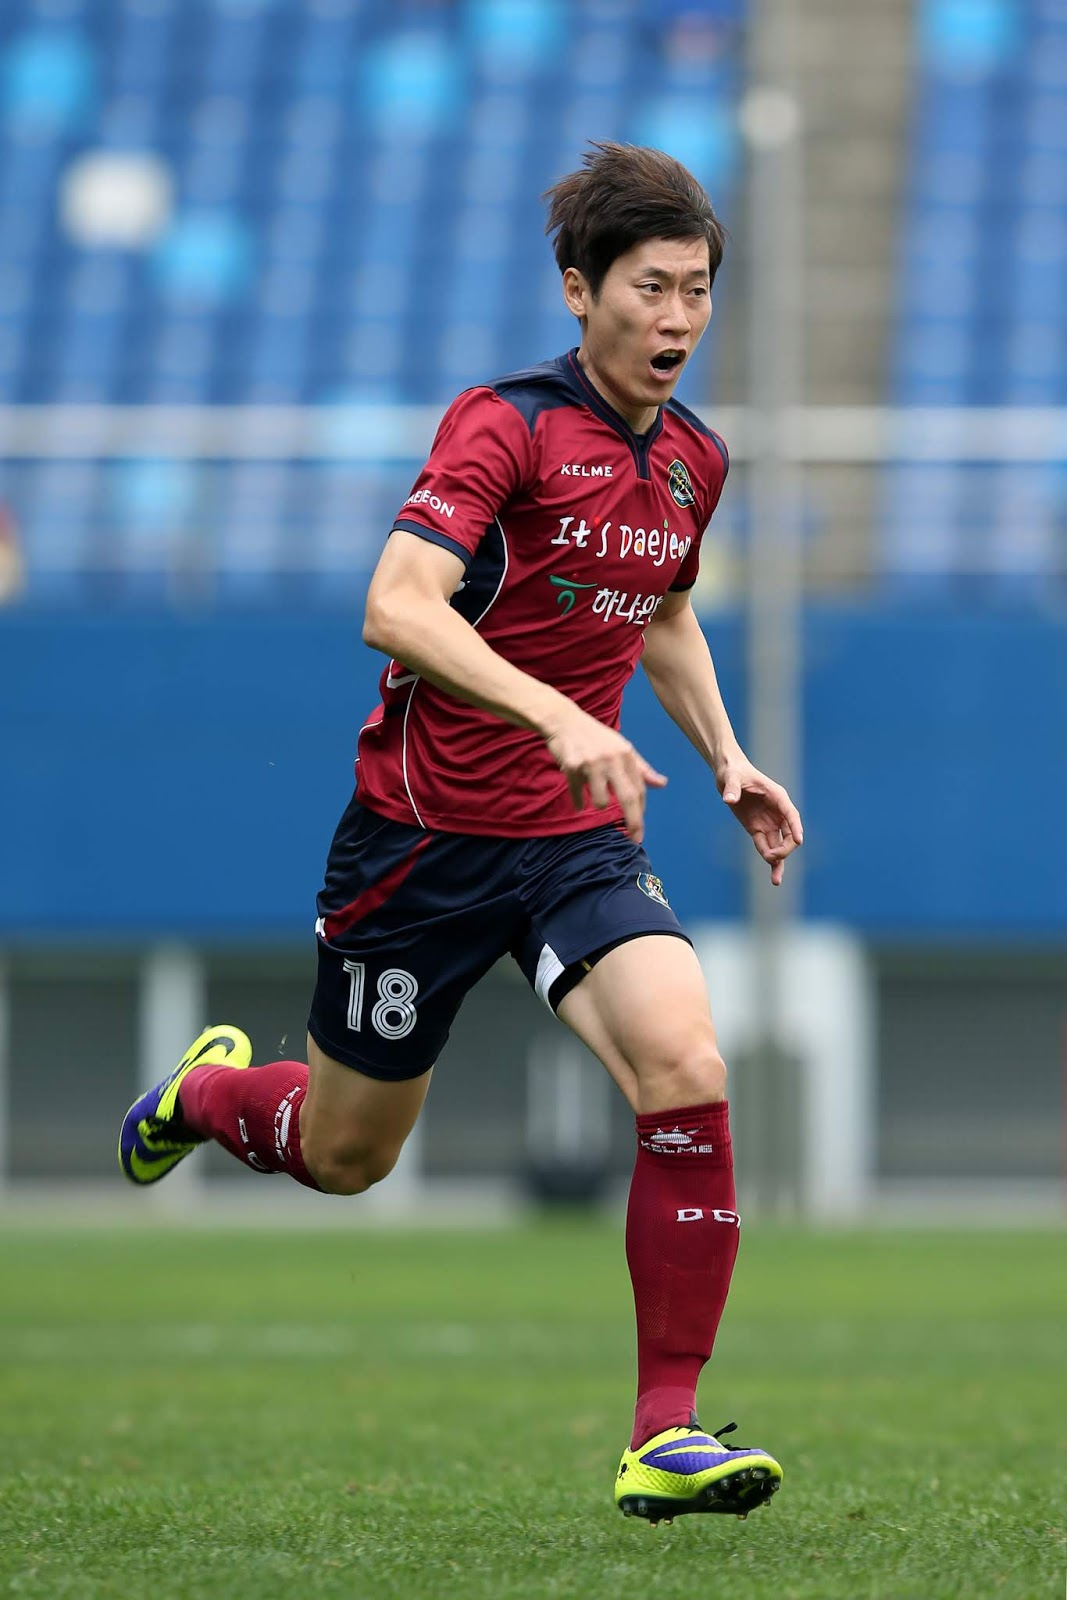 Interview: Ex-Daejeon Citizen Captain Yoon Weonil K League 2 K League Challenge Kim Eun-jung